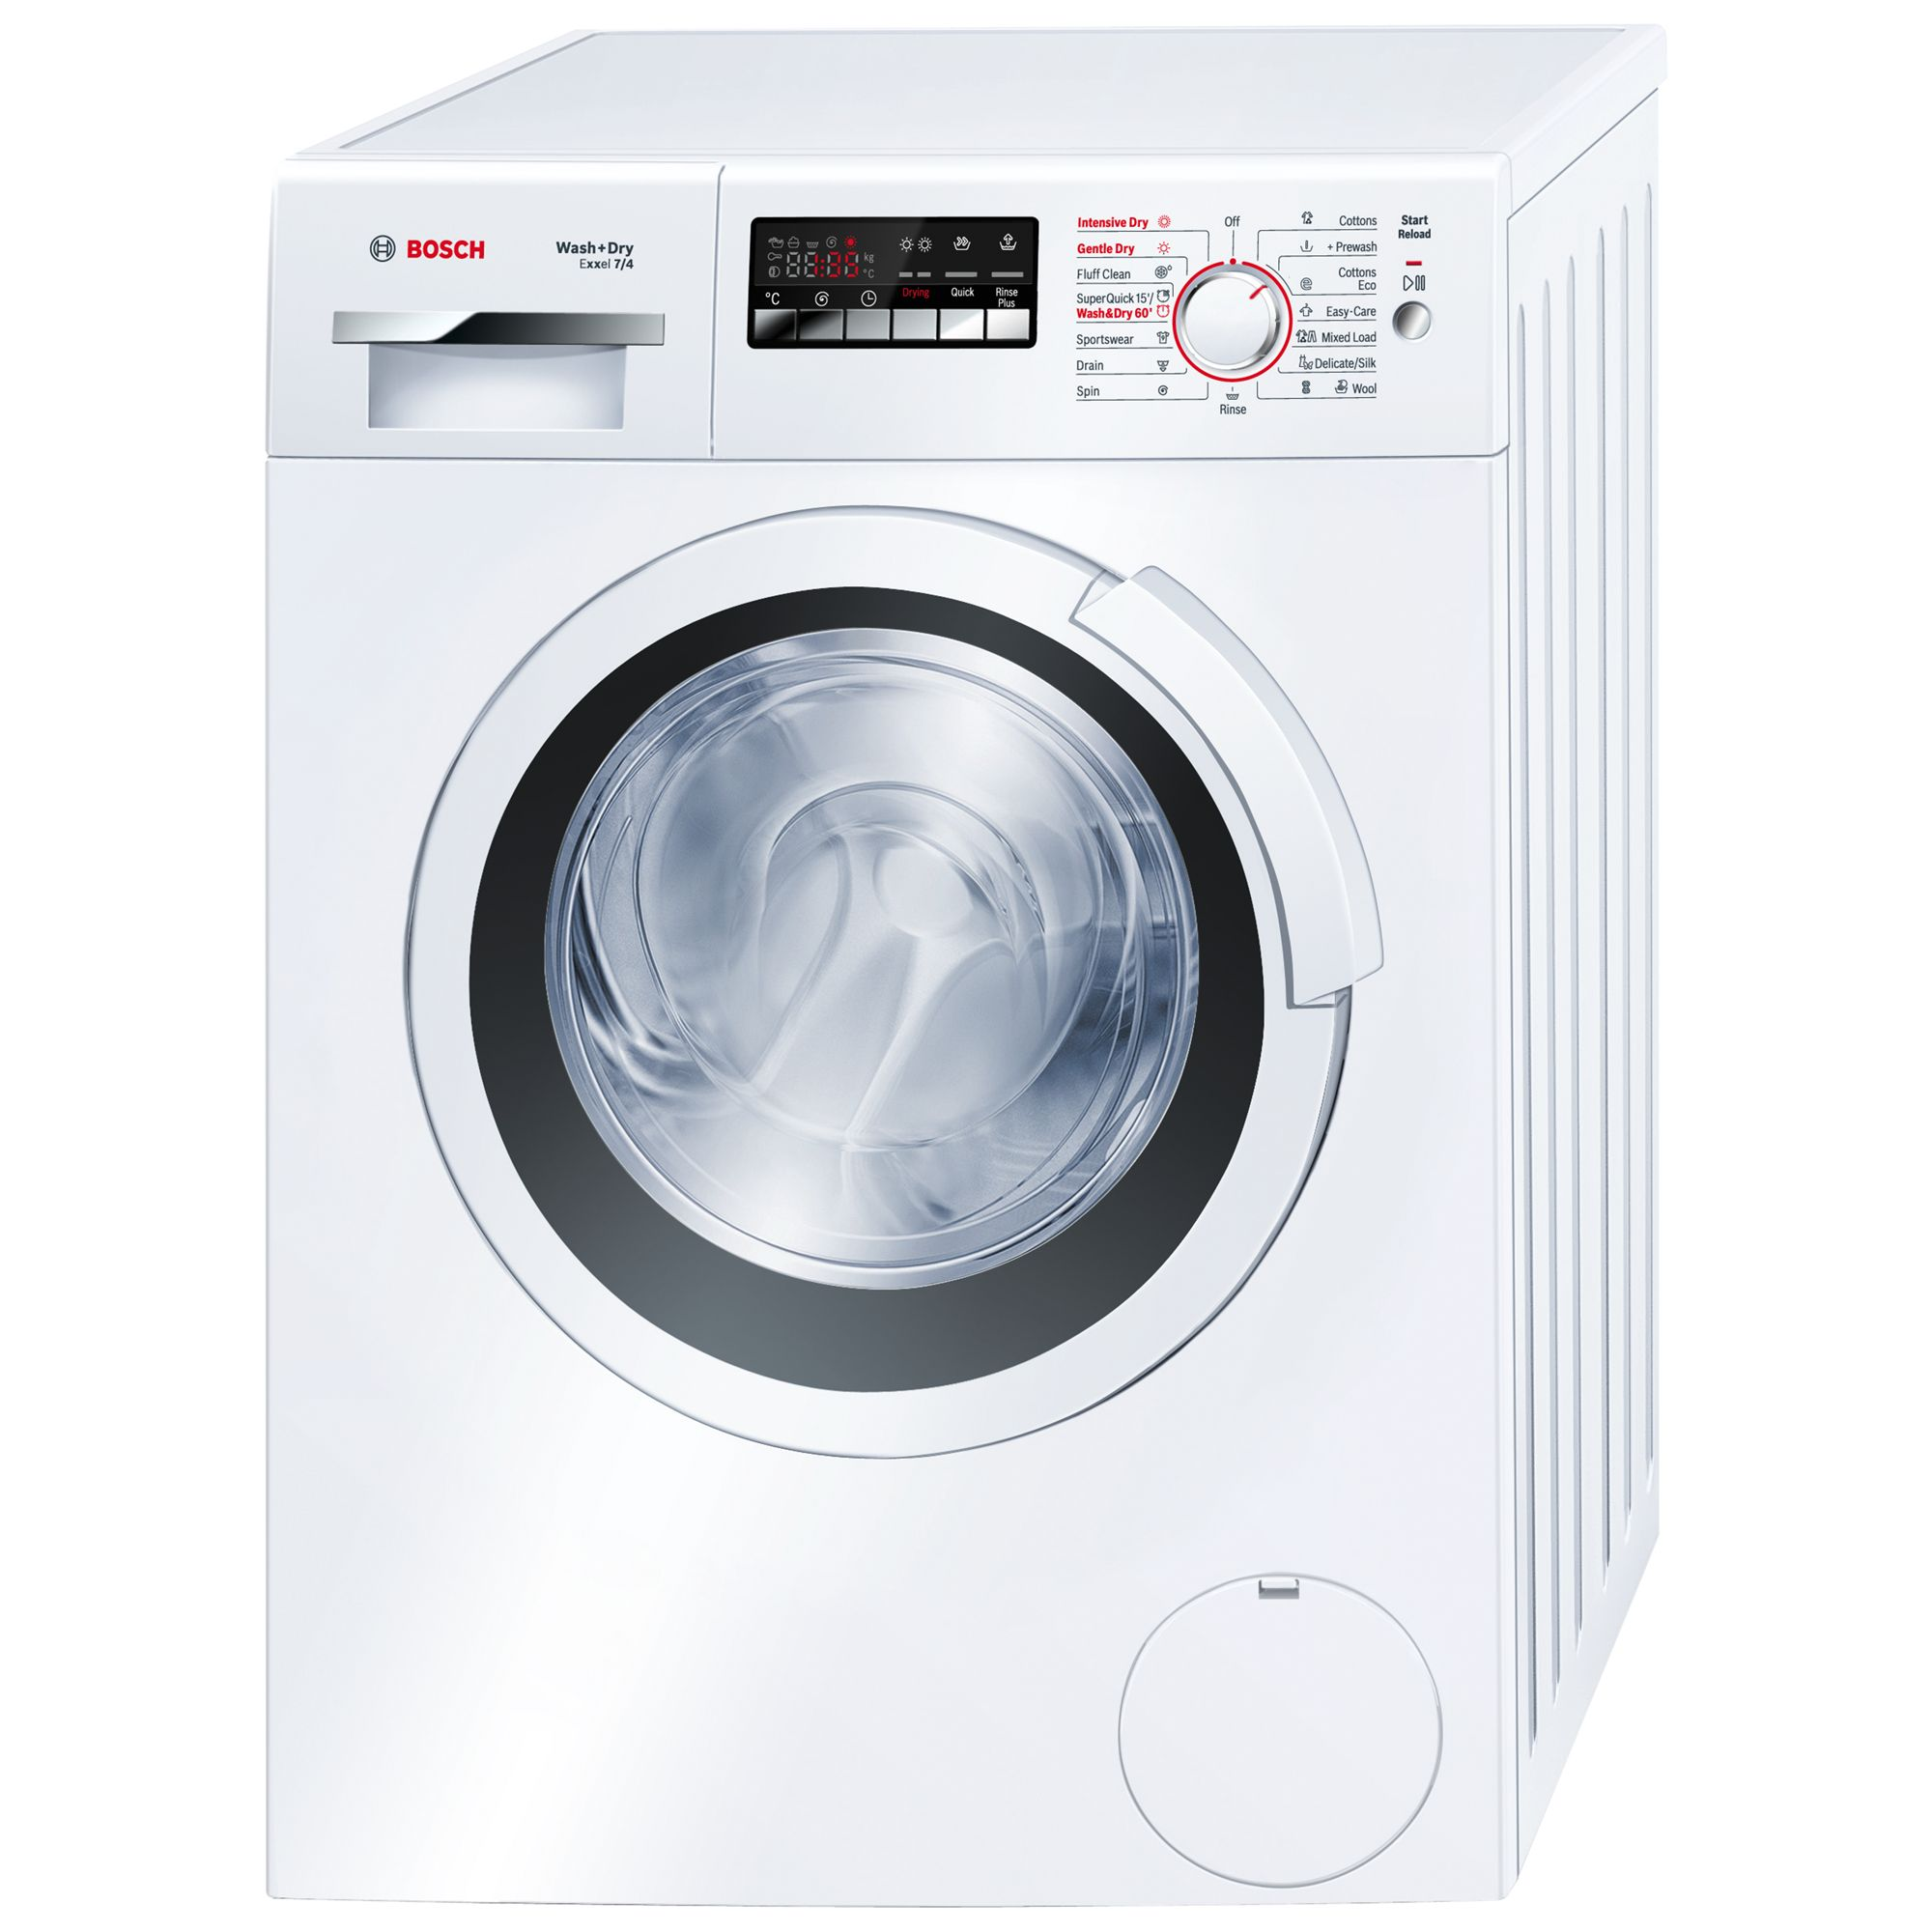 Bosch Exxcel WVH28360GB Washer Dryer, 7kg Wash/4kg Dry Load, B Energy Rating, 1400rpm Spin, White